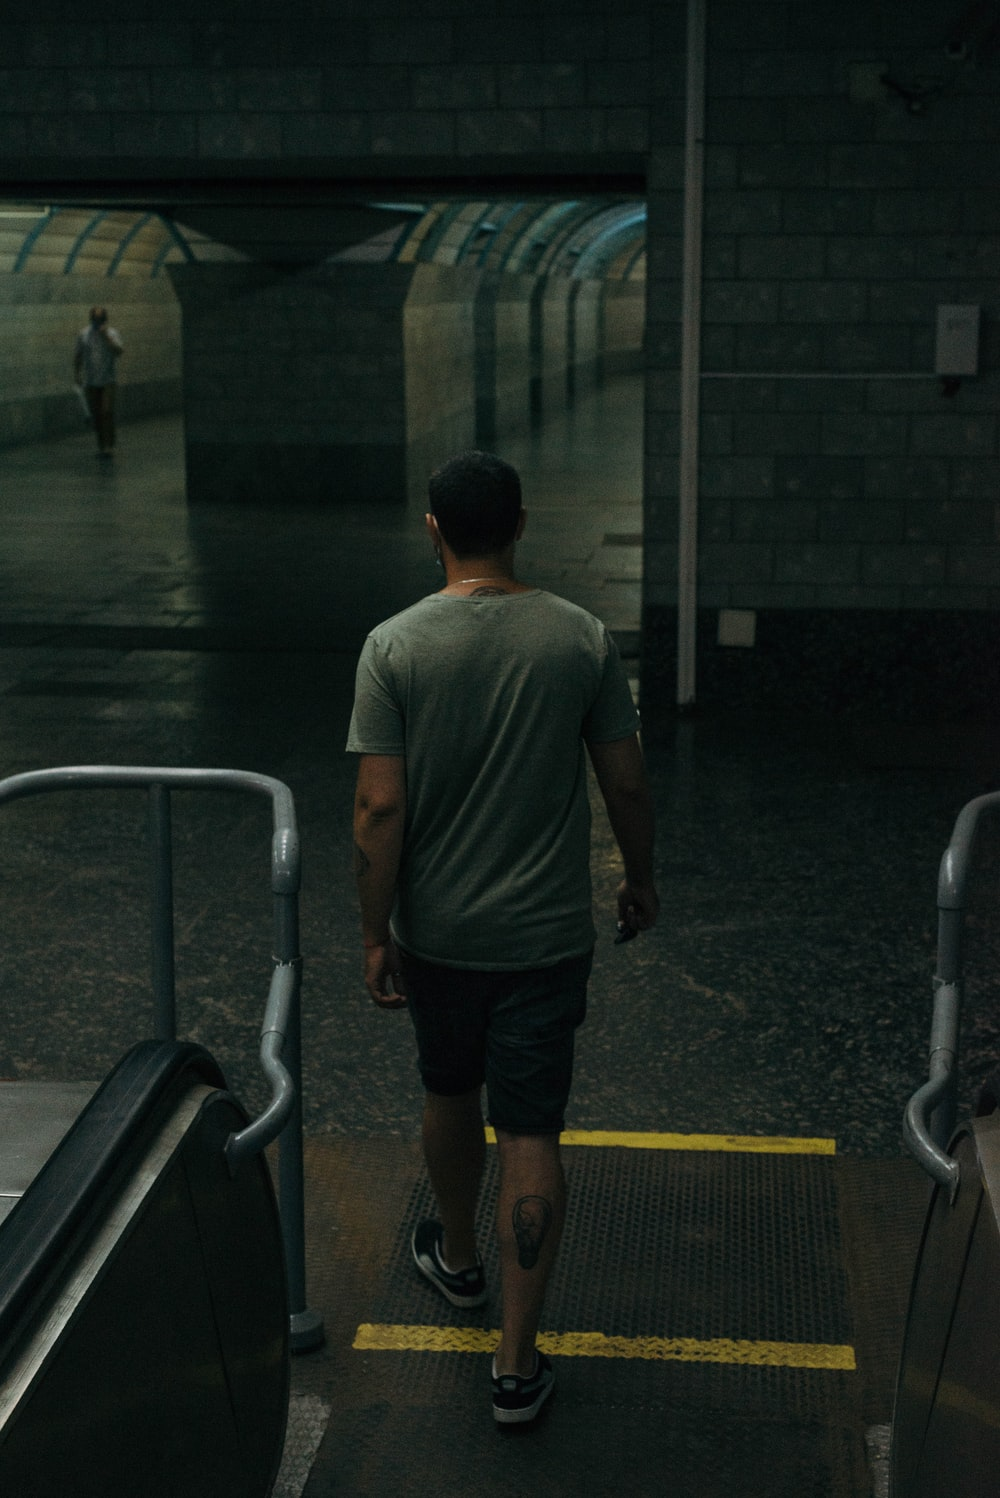 man in gray t-shirt and black shorts walking on hallway